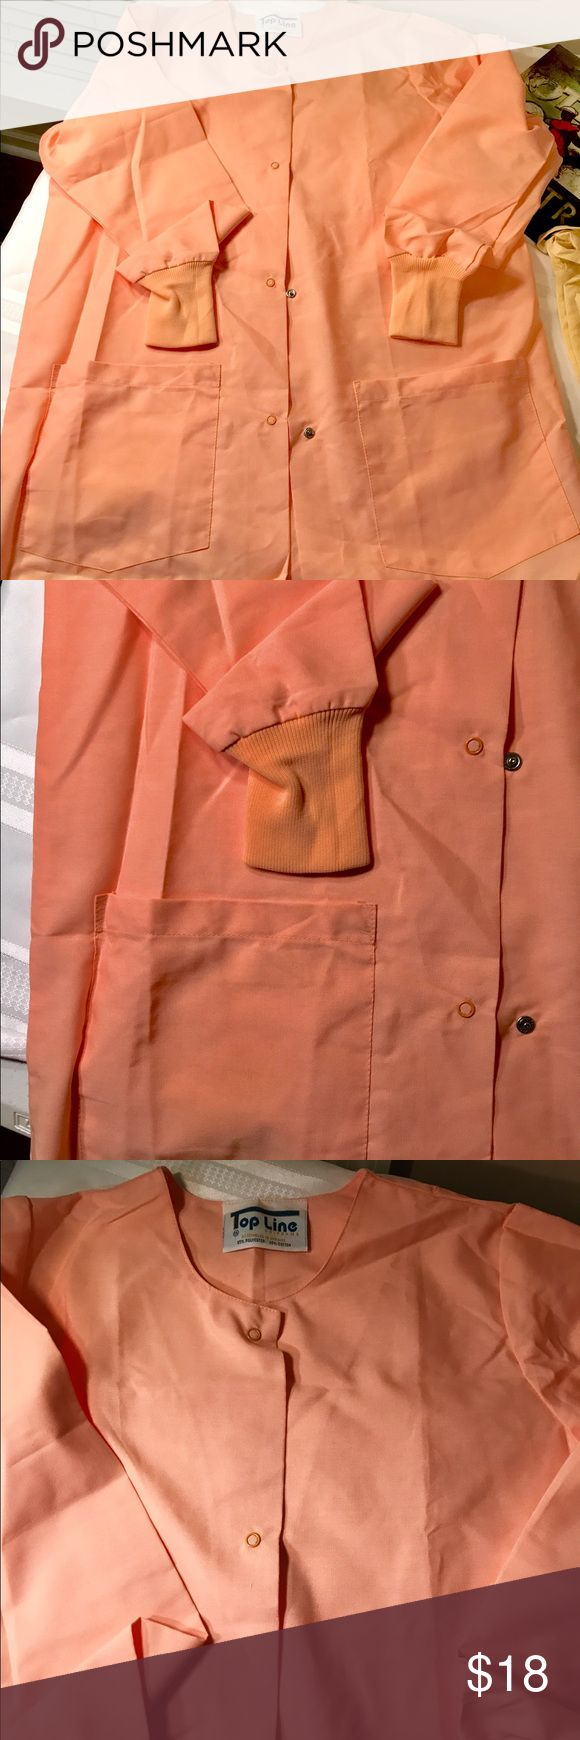 Corral scrub jacket 👩🏻🔬✴️ ( S) Get noticed in this super light weight Corall scrub cover jacket👩🏻🔬✴️. Measures: 29 inches shoulder to hem. 21 inches across front & 22 inches across the back. Super soft cuffs. This jacket goes with whatever color you choose. Choose to be uniquely beautiful, choose to be you. 👑🐝❤️ Tops